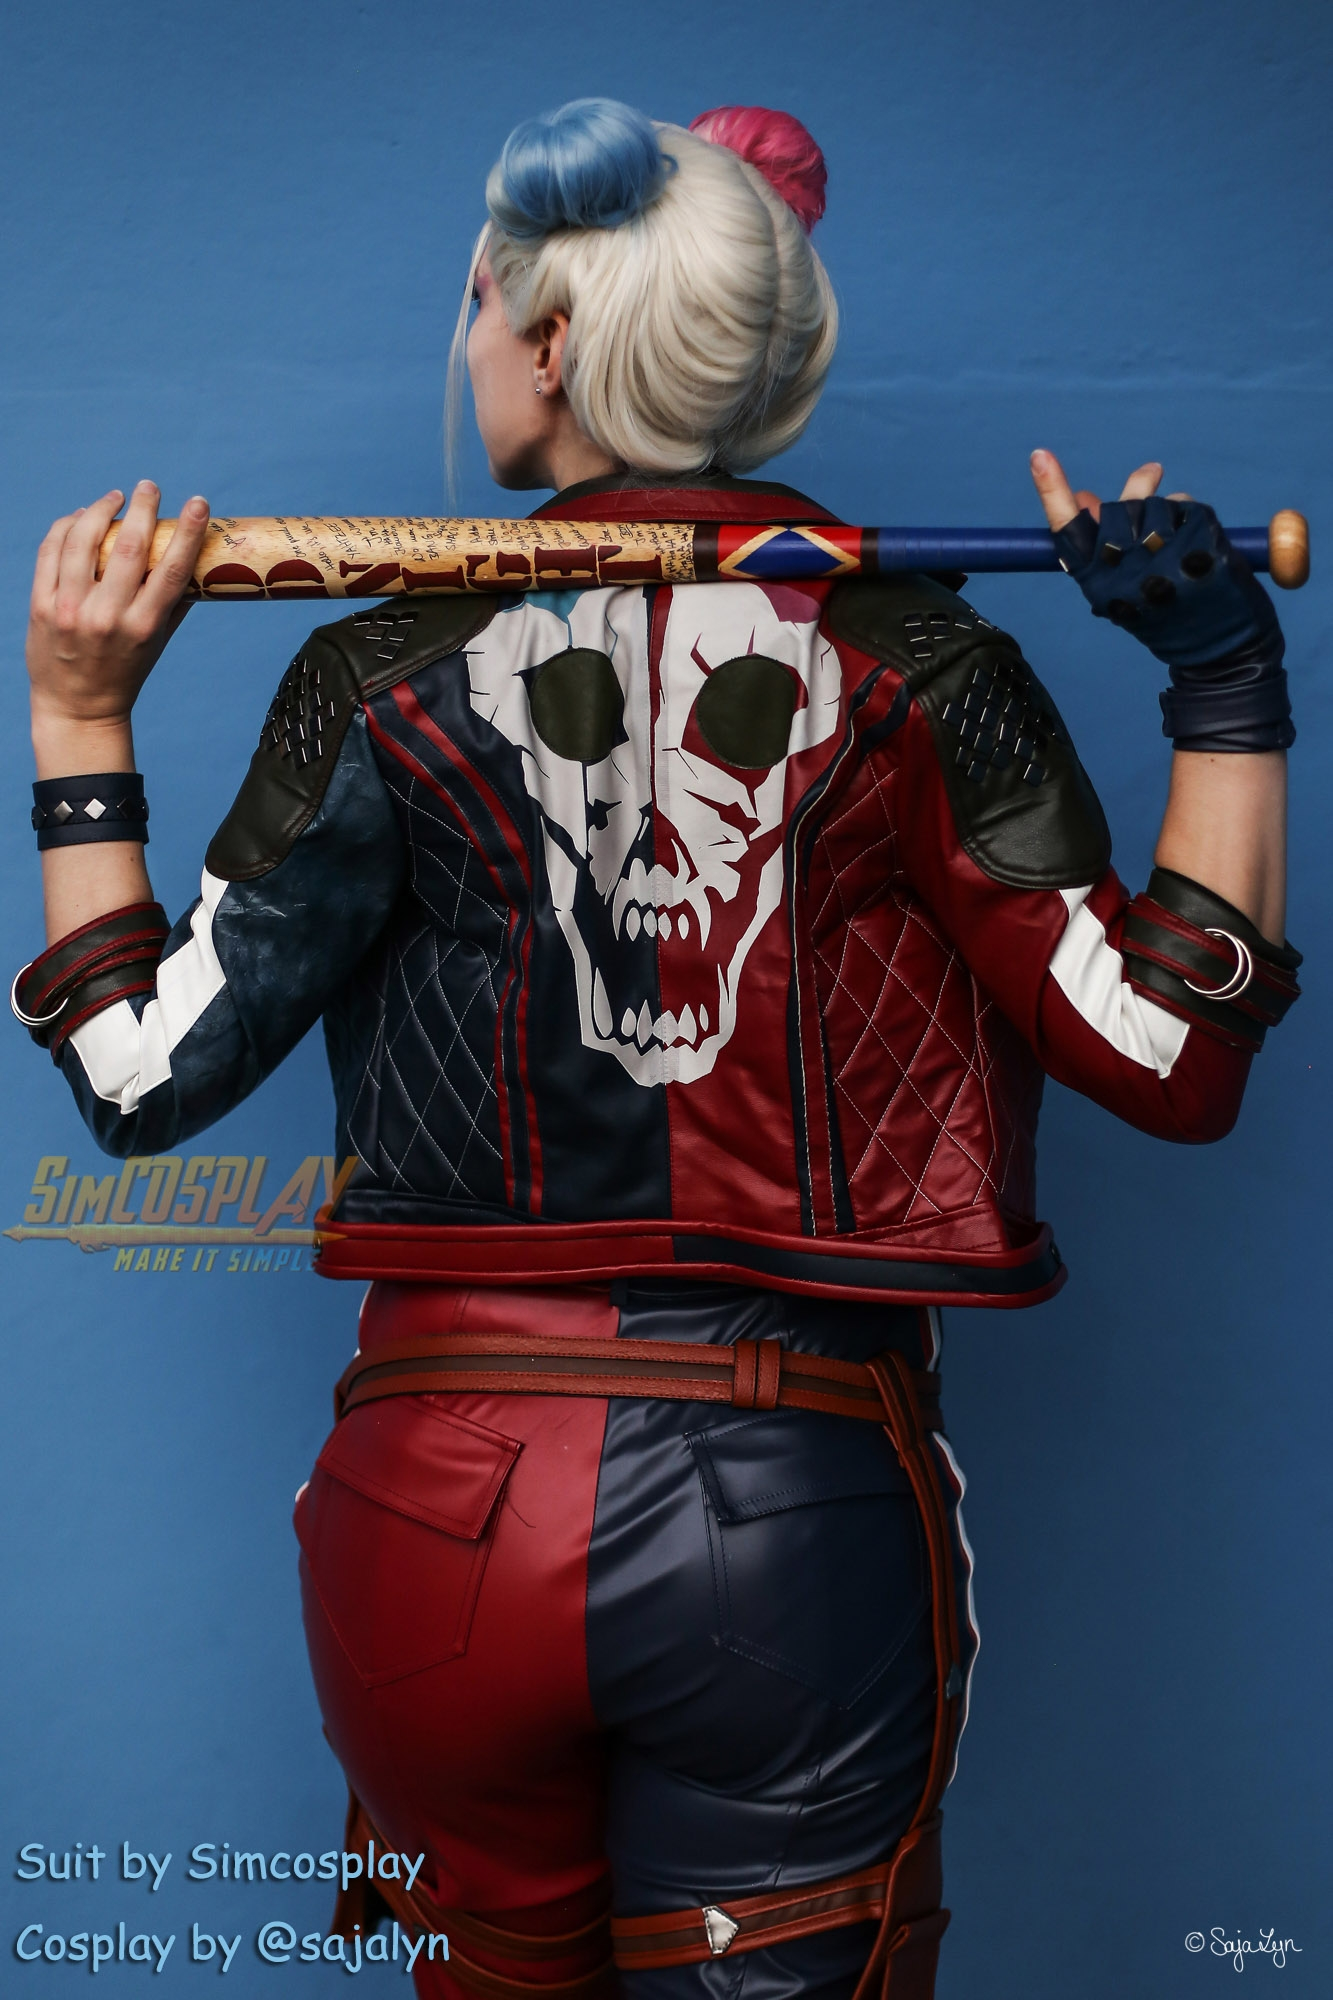 Harley Quinn Cosplay Costumes Suicide Squad Kill the Justice League Edition Cosplay Suit - SimCosplay